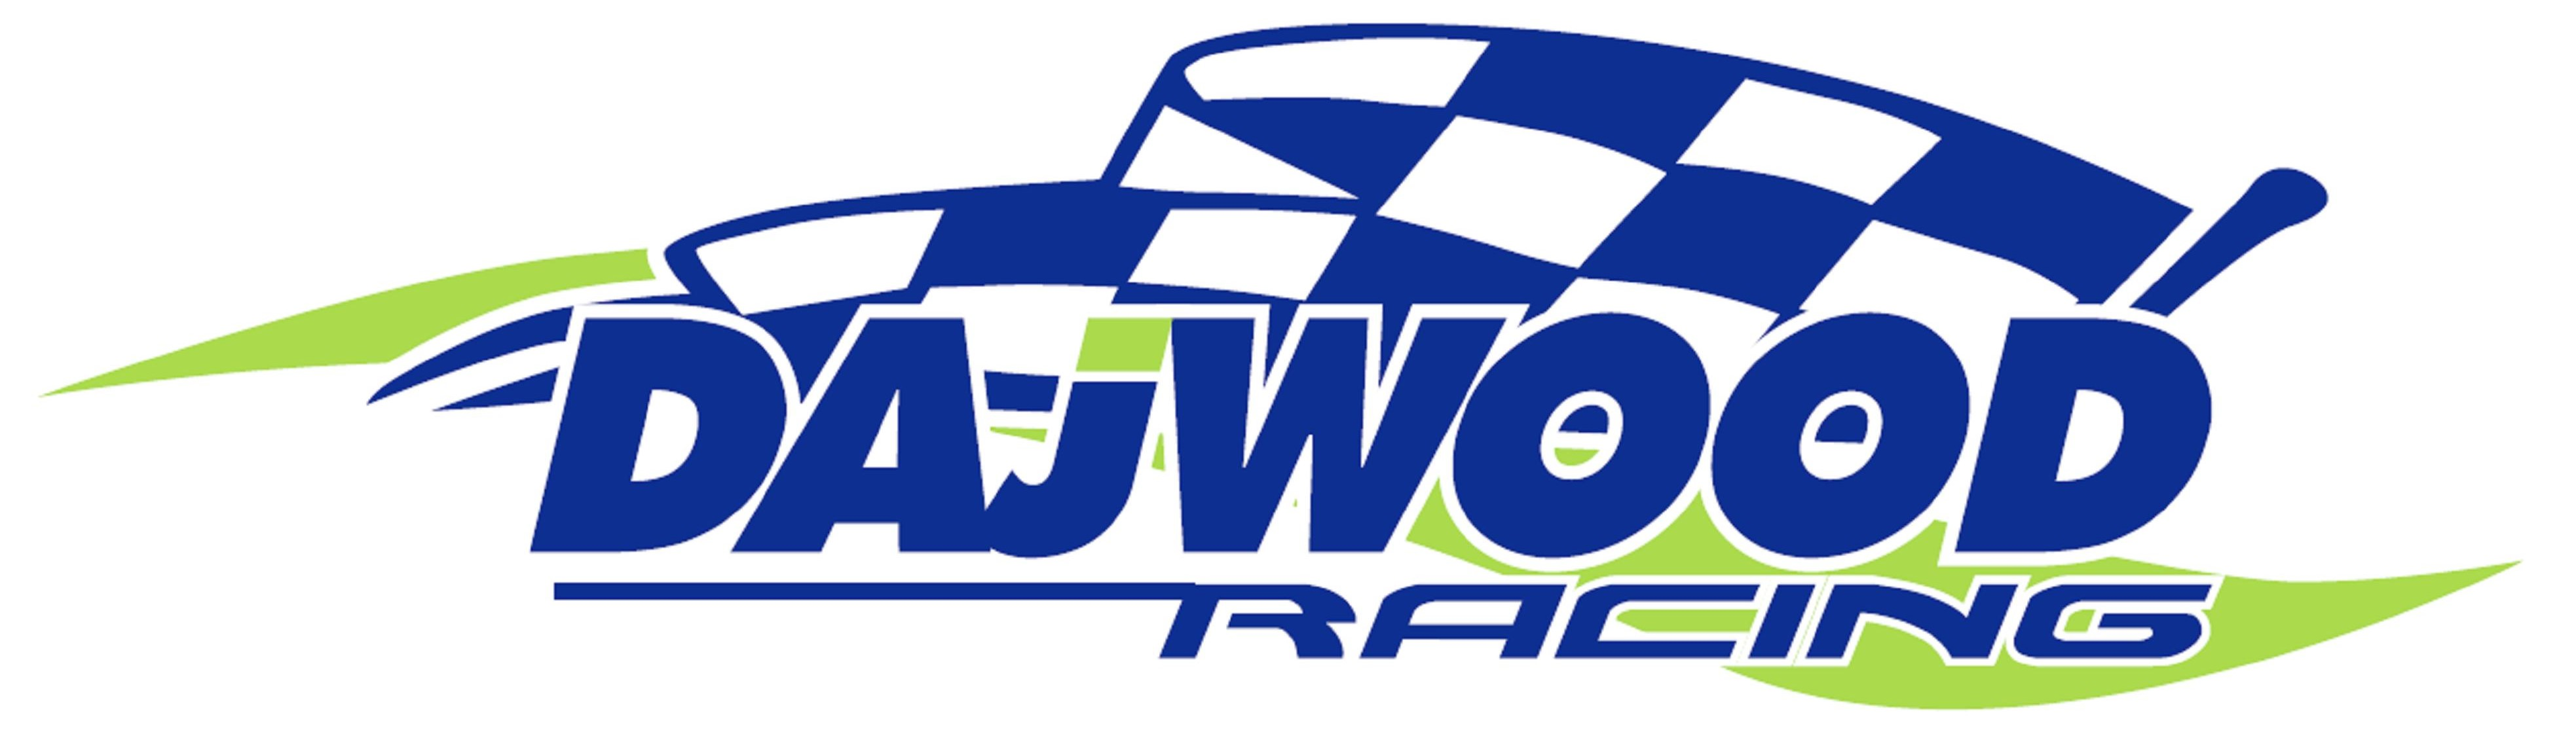 Dajwood Racing Logo